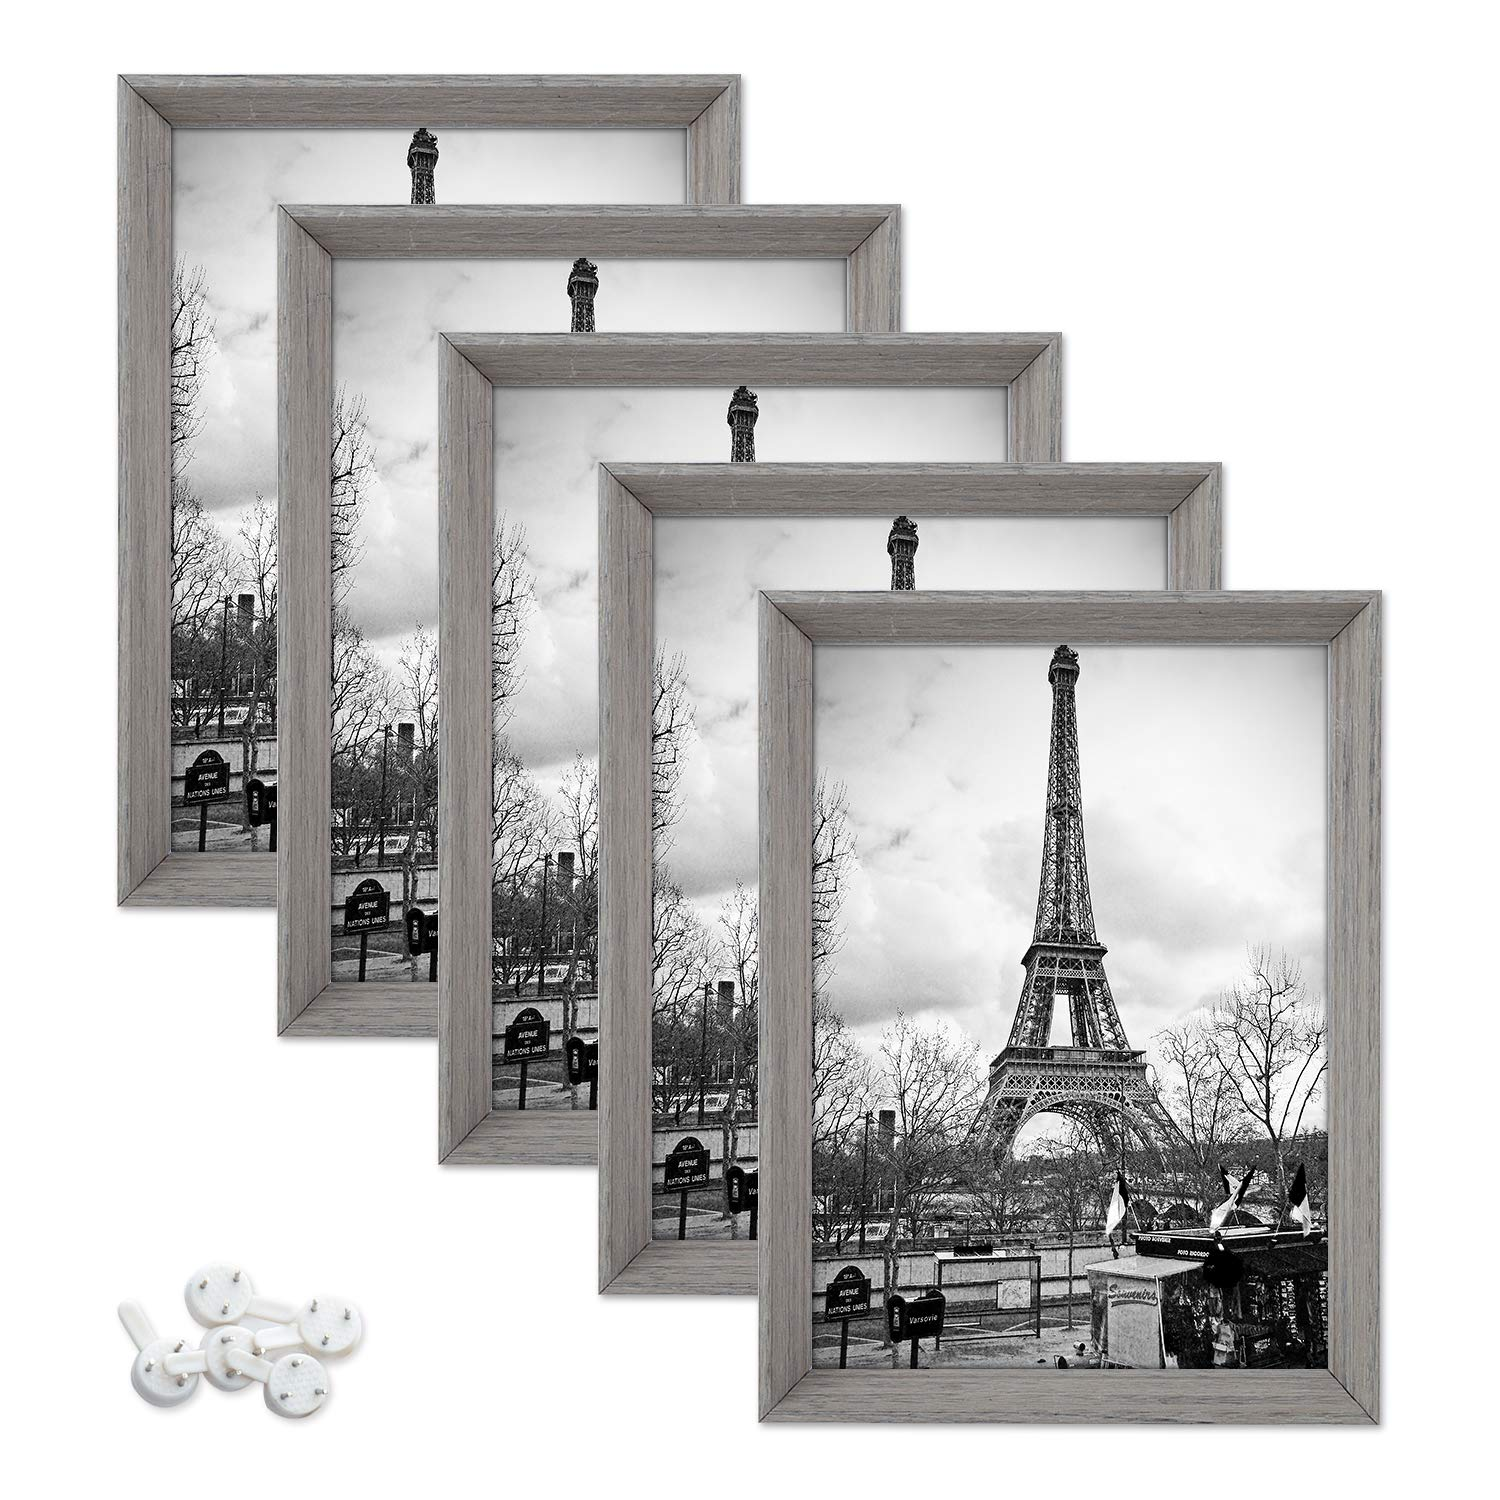 upsimples 5x7 Picture Frames with High Definition Glass,Rustic Photo Frames for Wall or Tabletop Display,Set of 5 by upsimples